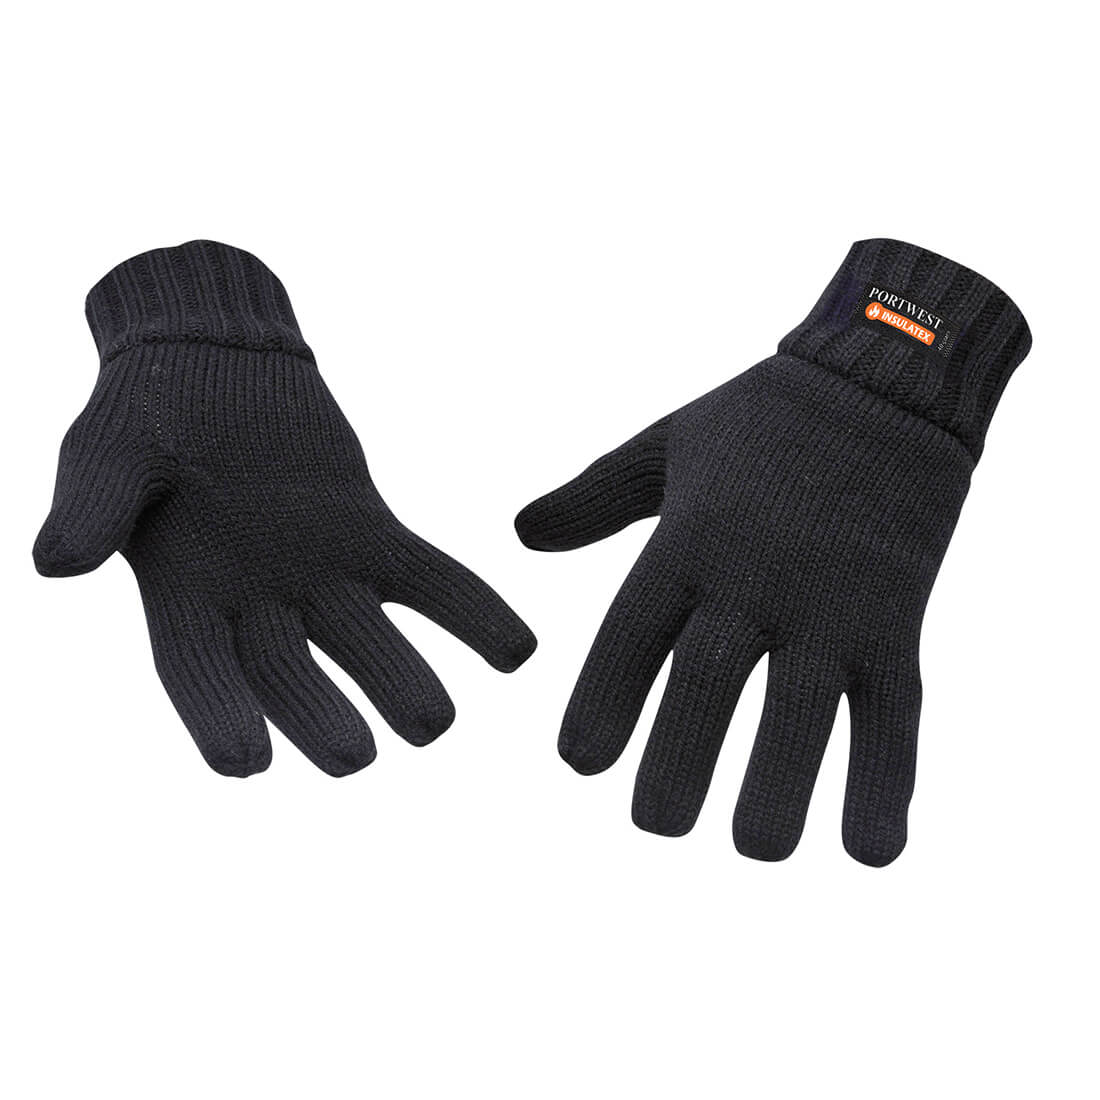 Image of Portwest Insulatex Lined Knit Gloves Black One Size